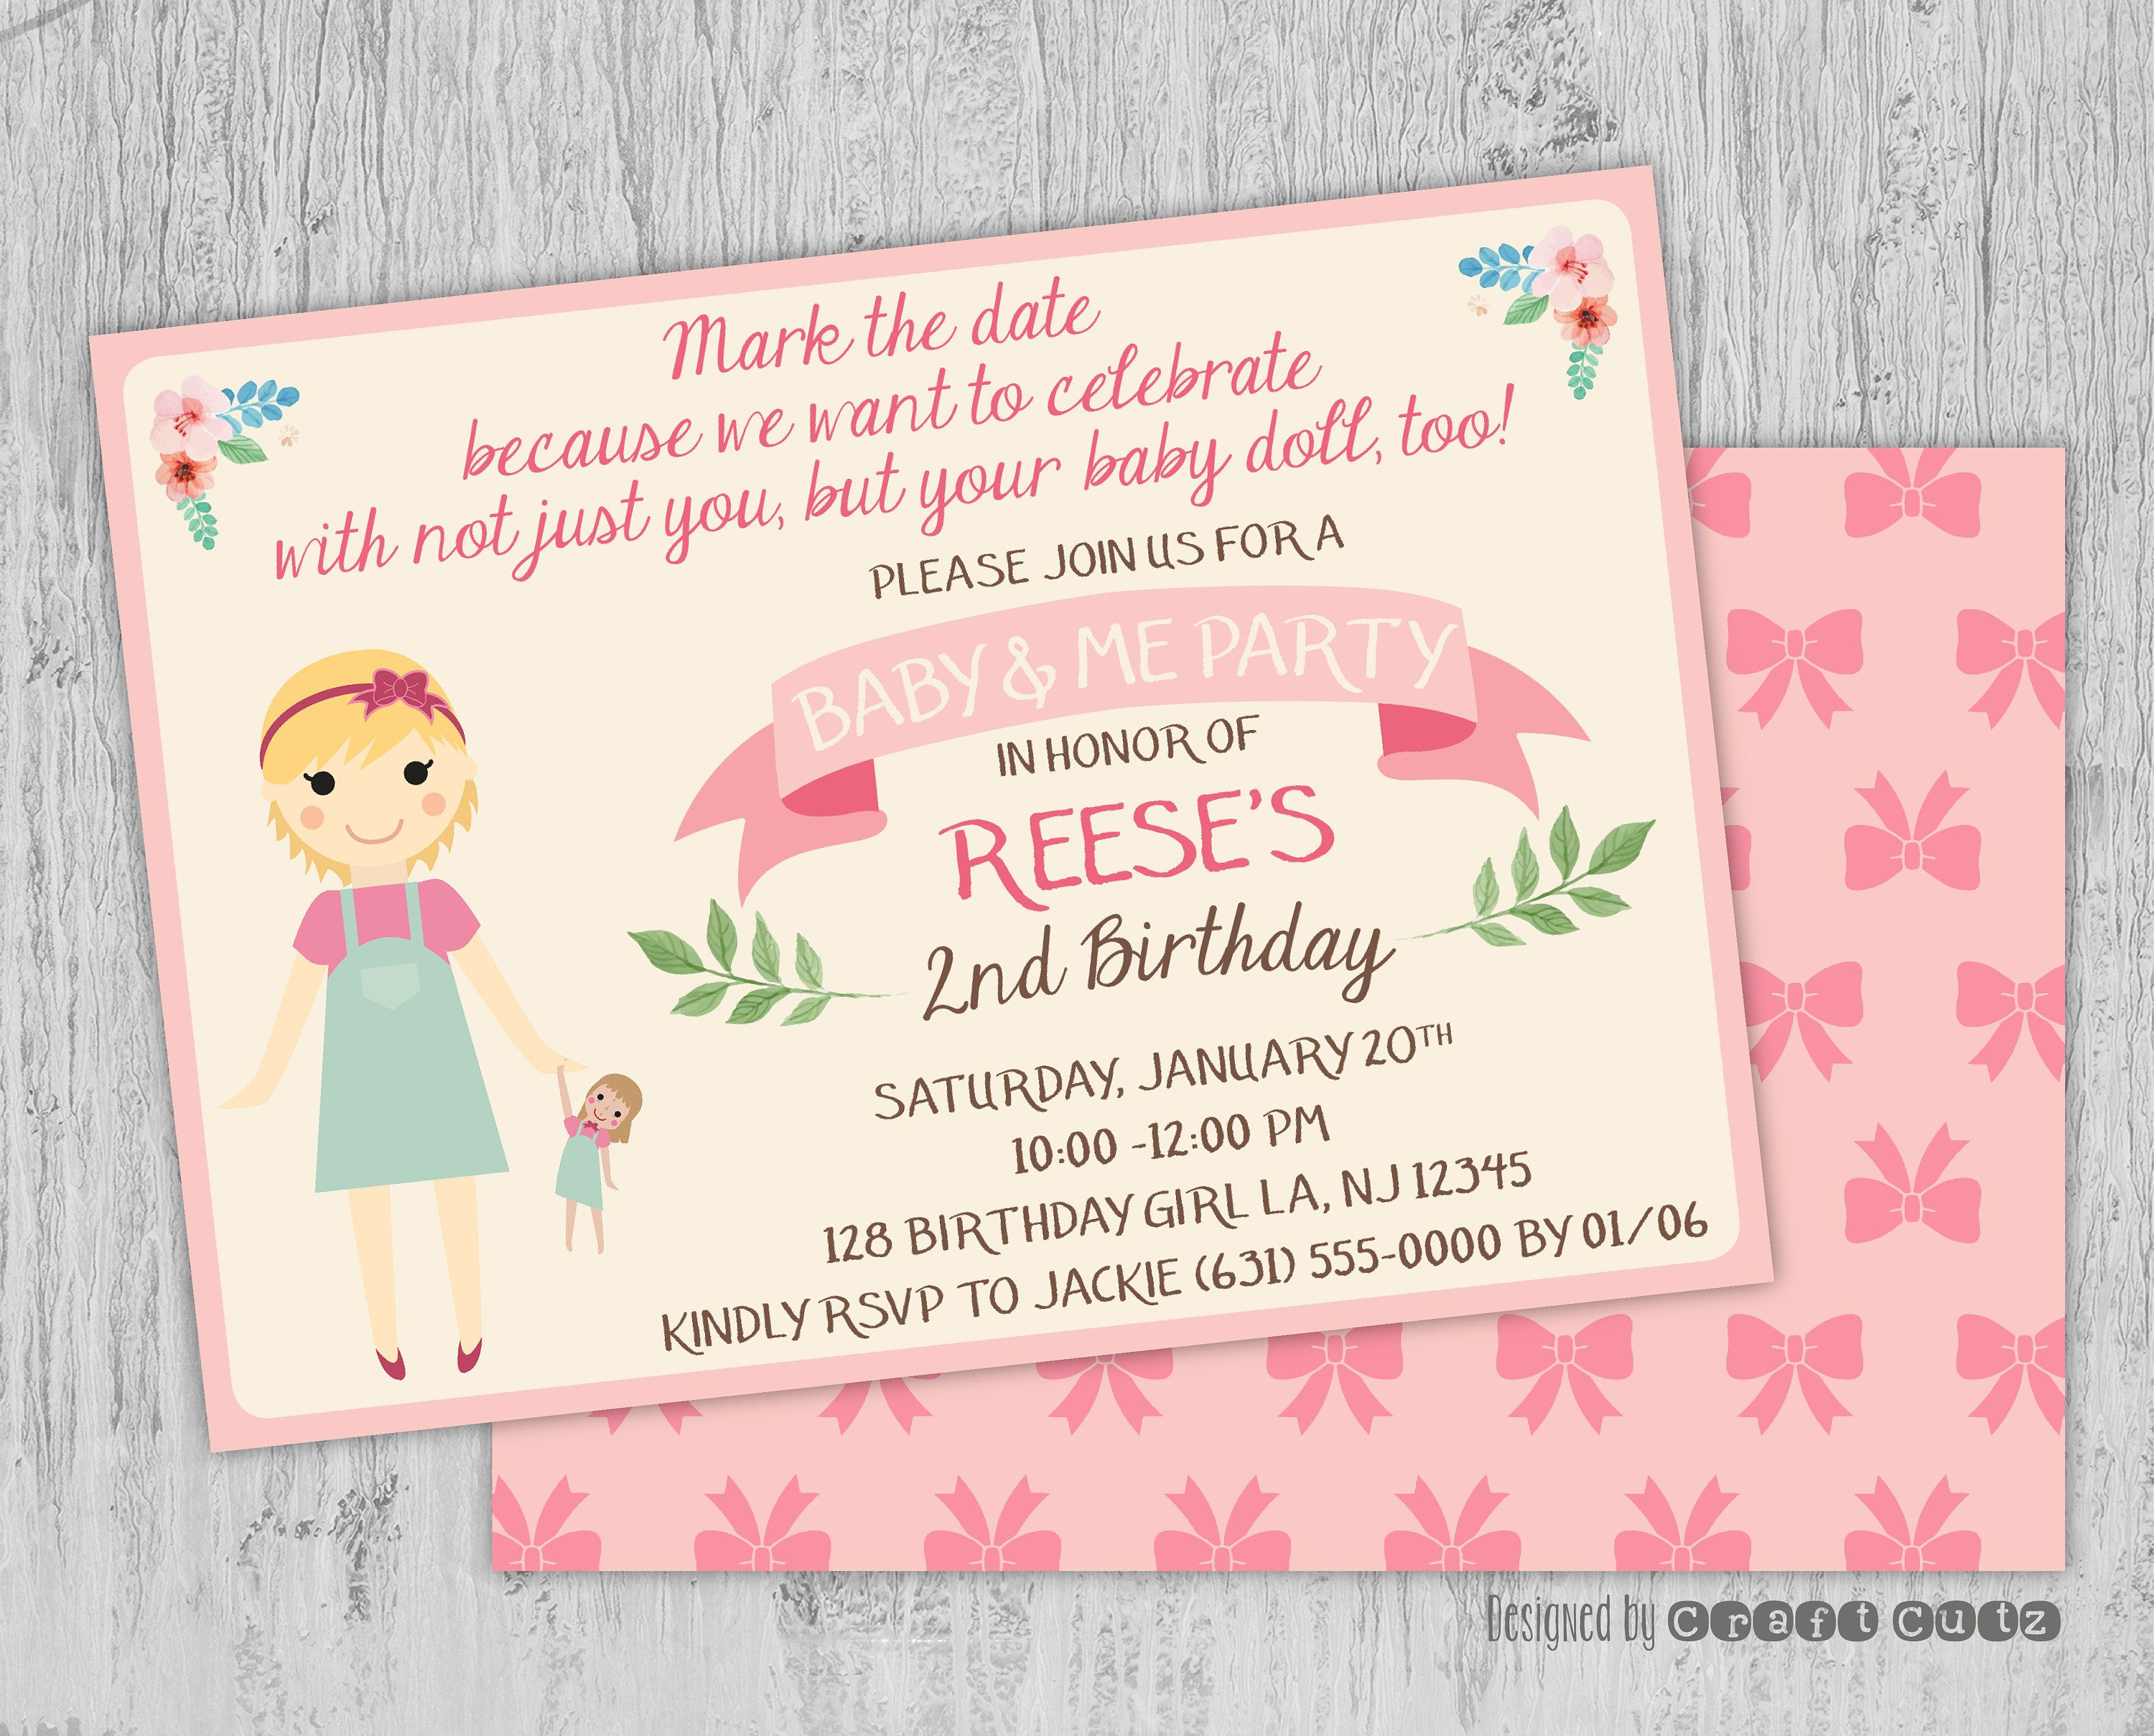 Baby and me birthday invitation baby doll party invitation baby and me birthday invitation baby doll party invitation little girls birthday party filmwisefo